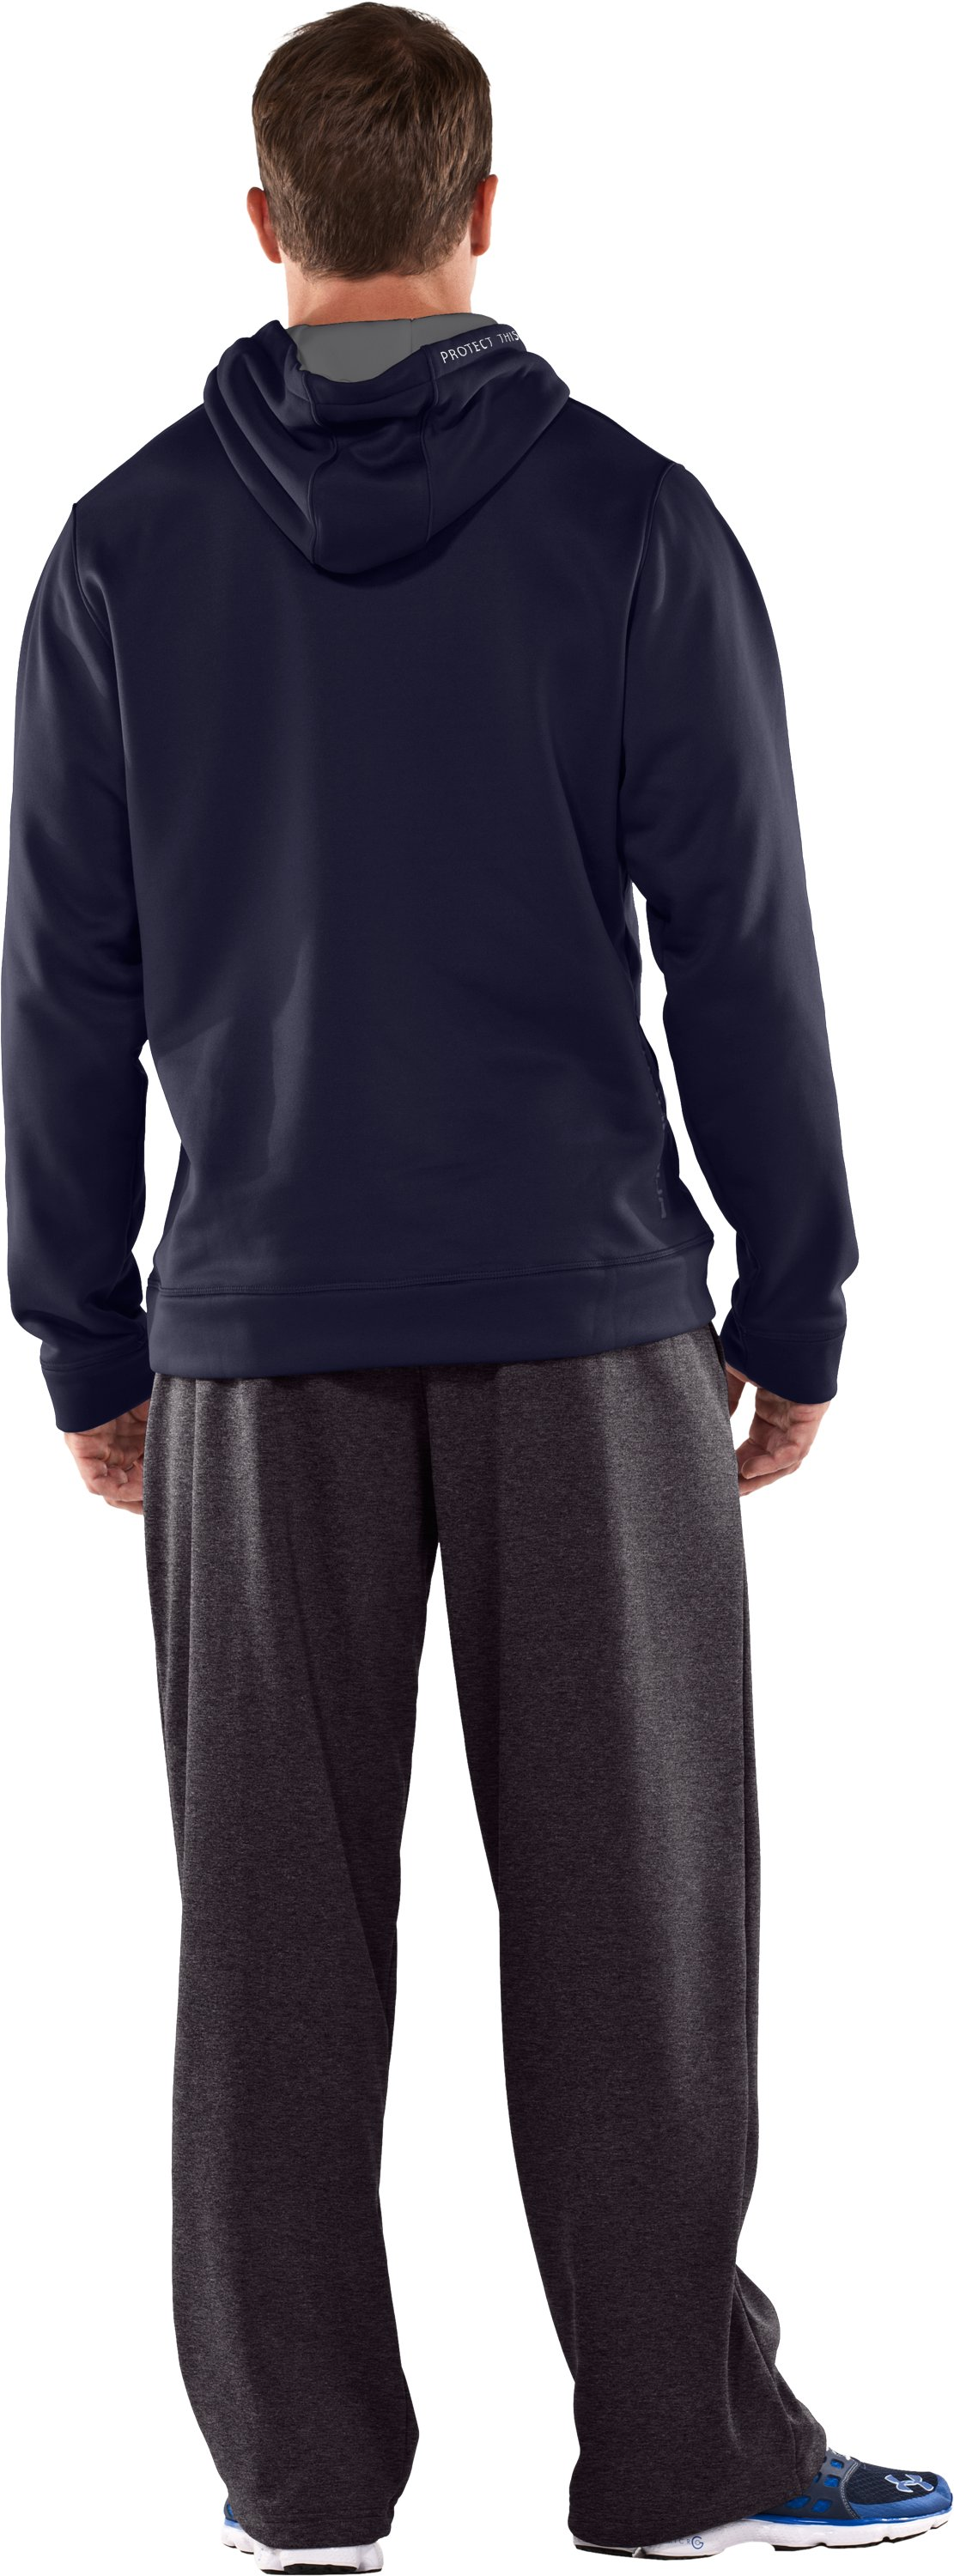 Men's Big Flag Logo Tackle Twill Fleece Hoodie, Midnight Navy, Back